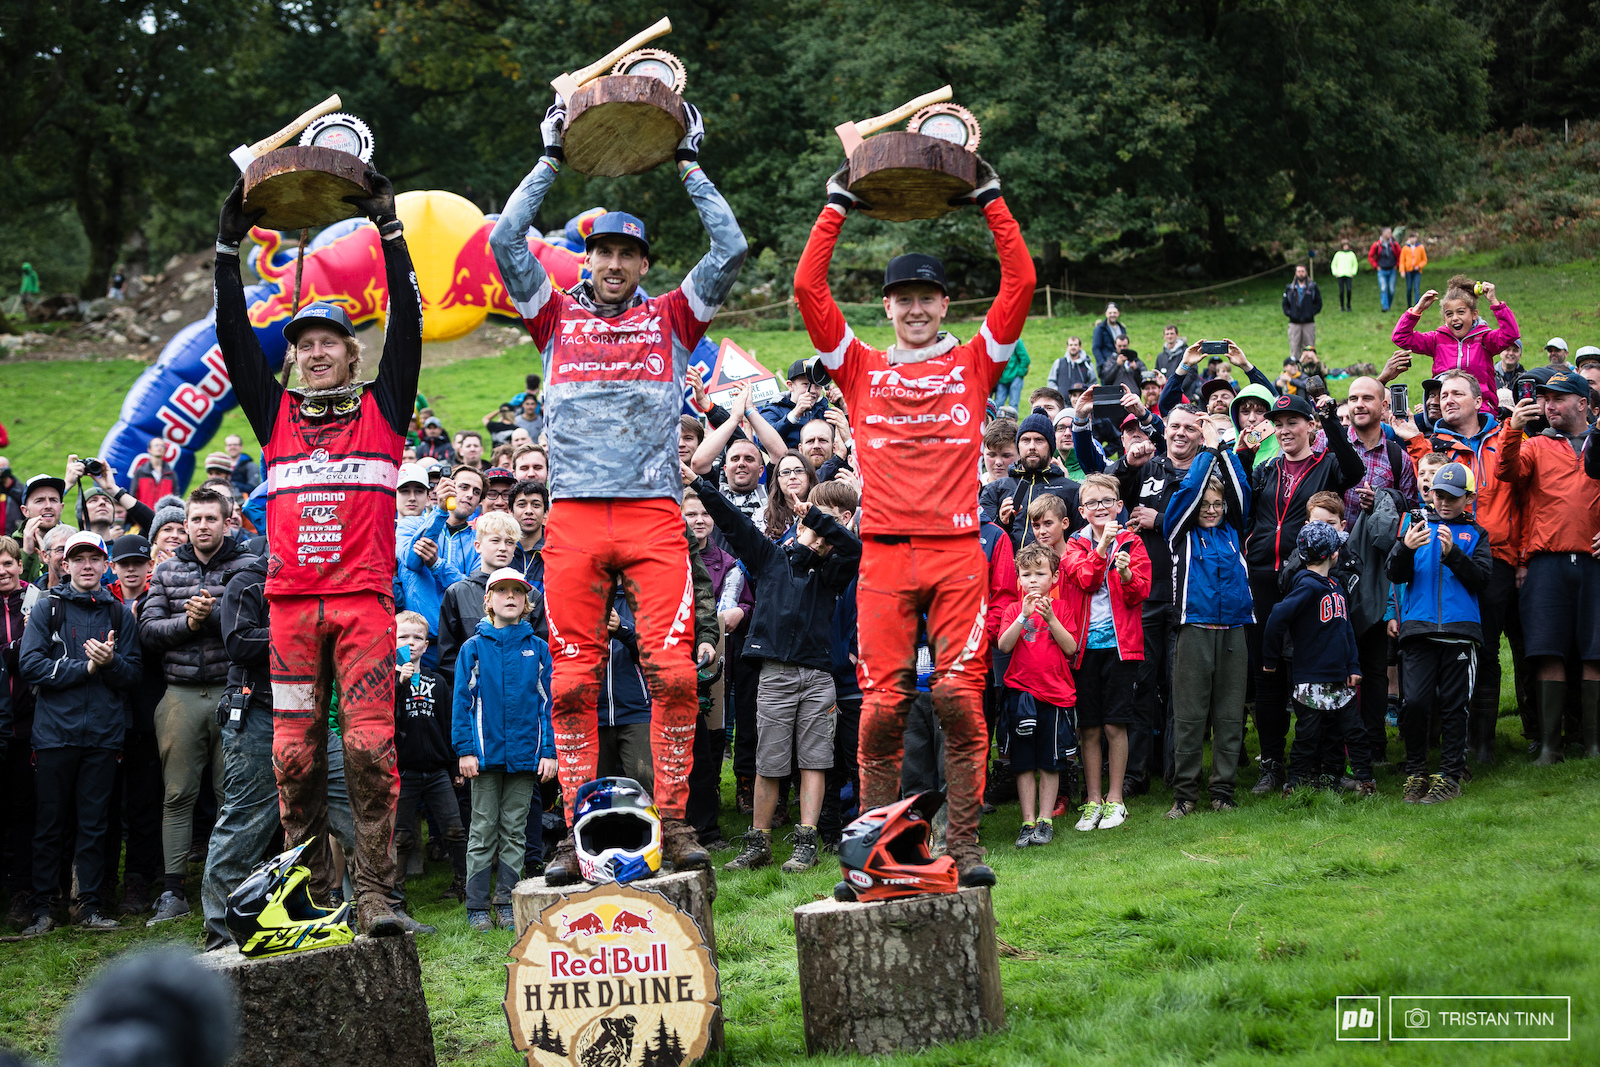 Gee Atherton 1st Bernard Kerr 2nd and Charlie Hatton in 3rd